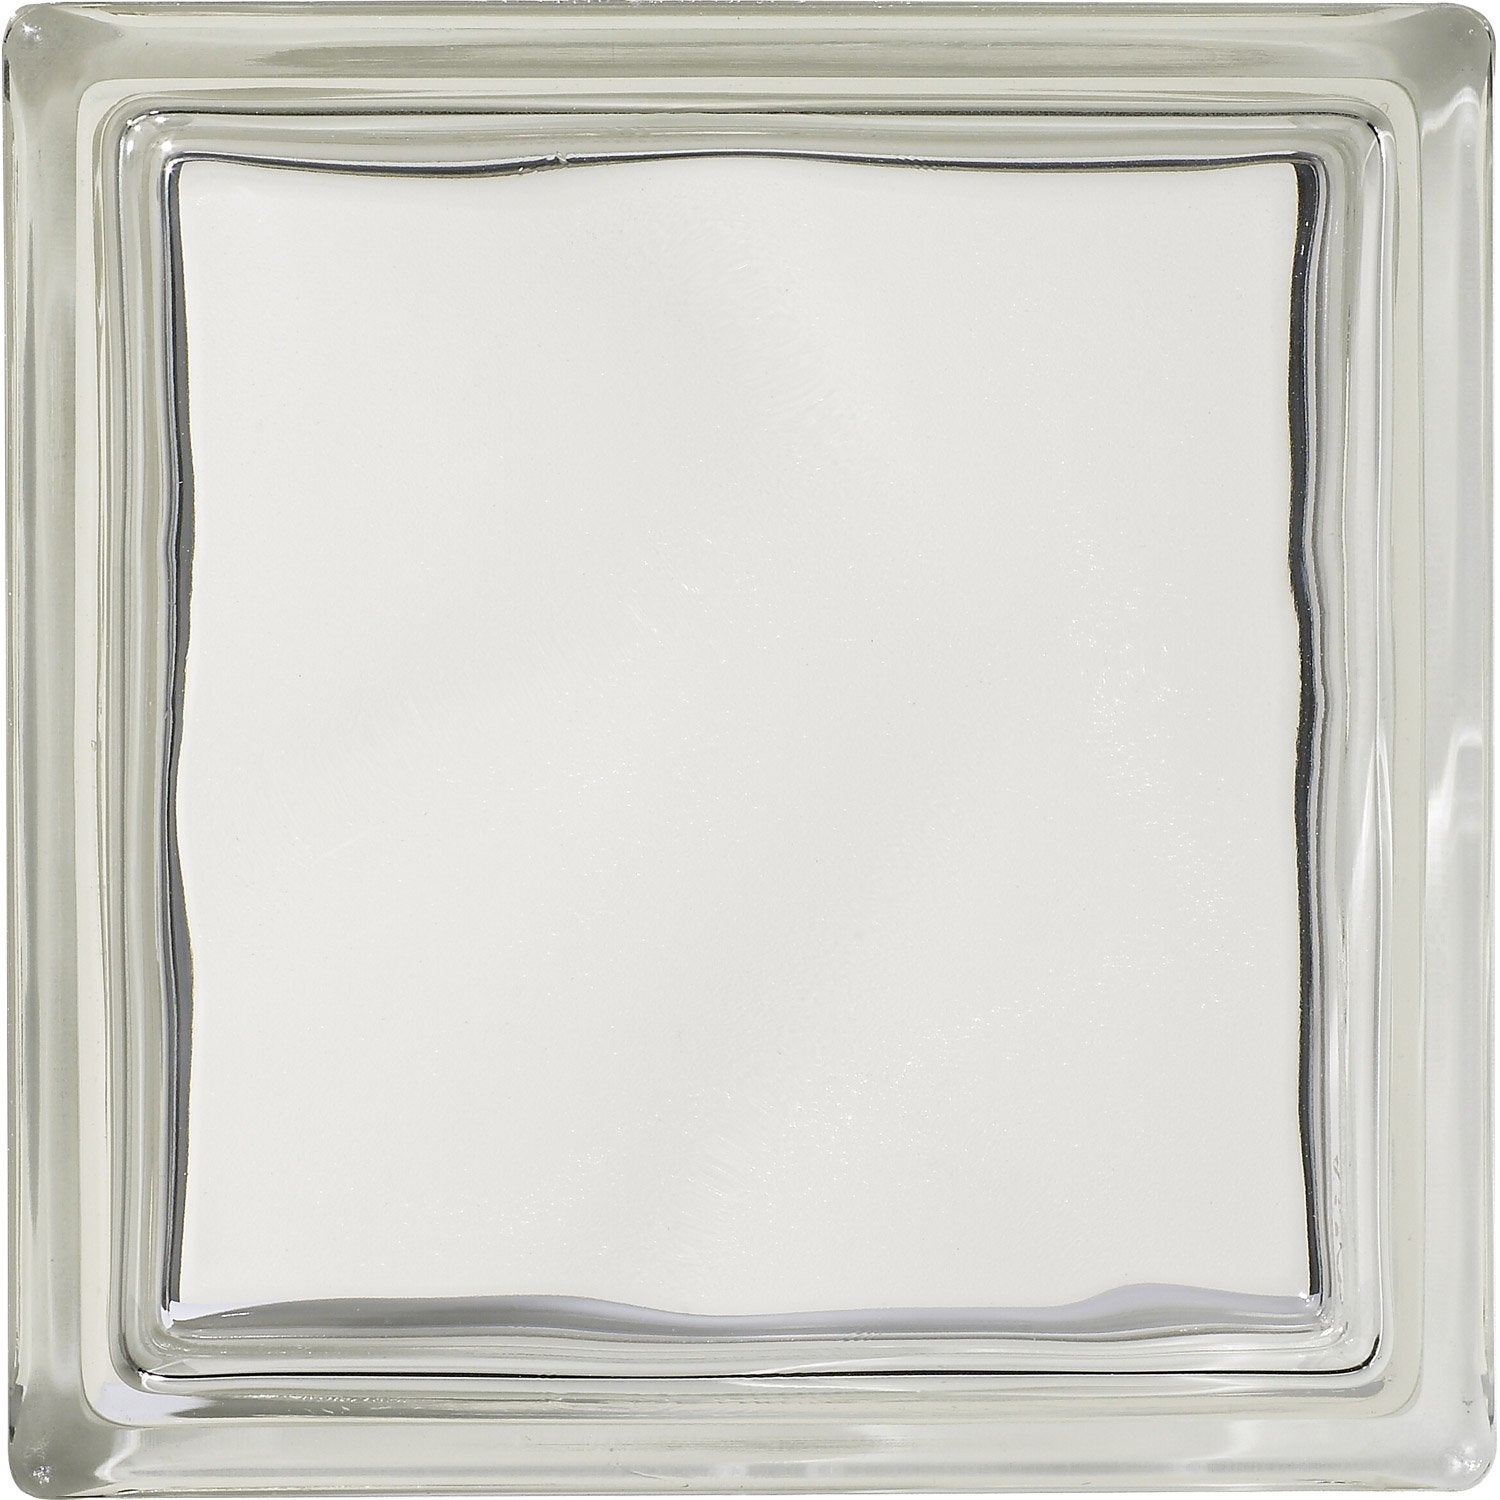 Brique de verre transparent lisse double face leroy merlin - Brique de verre transparente ...